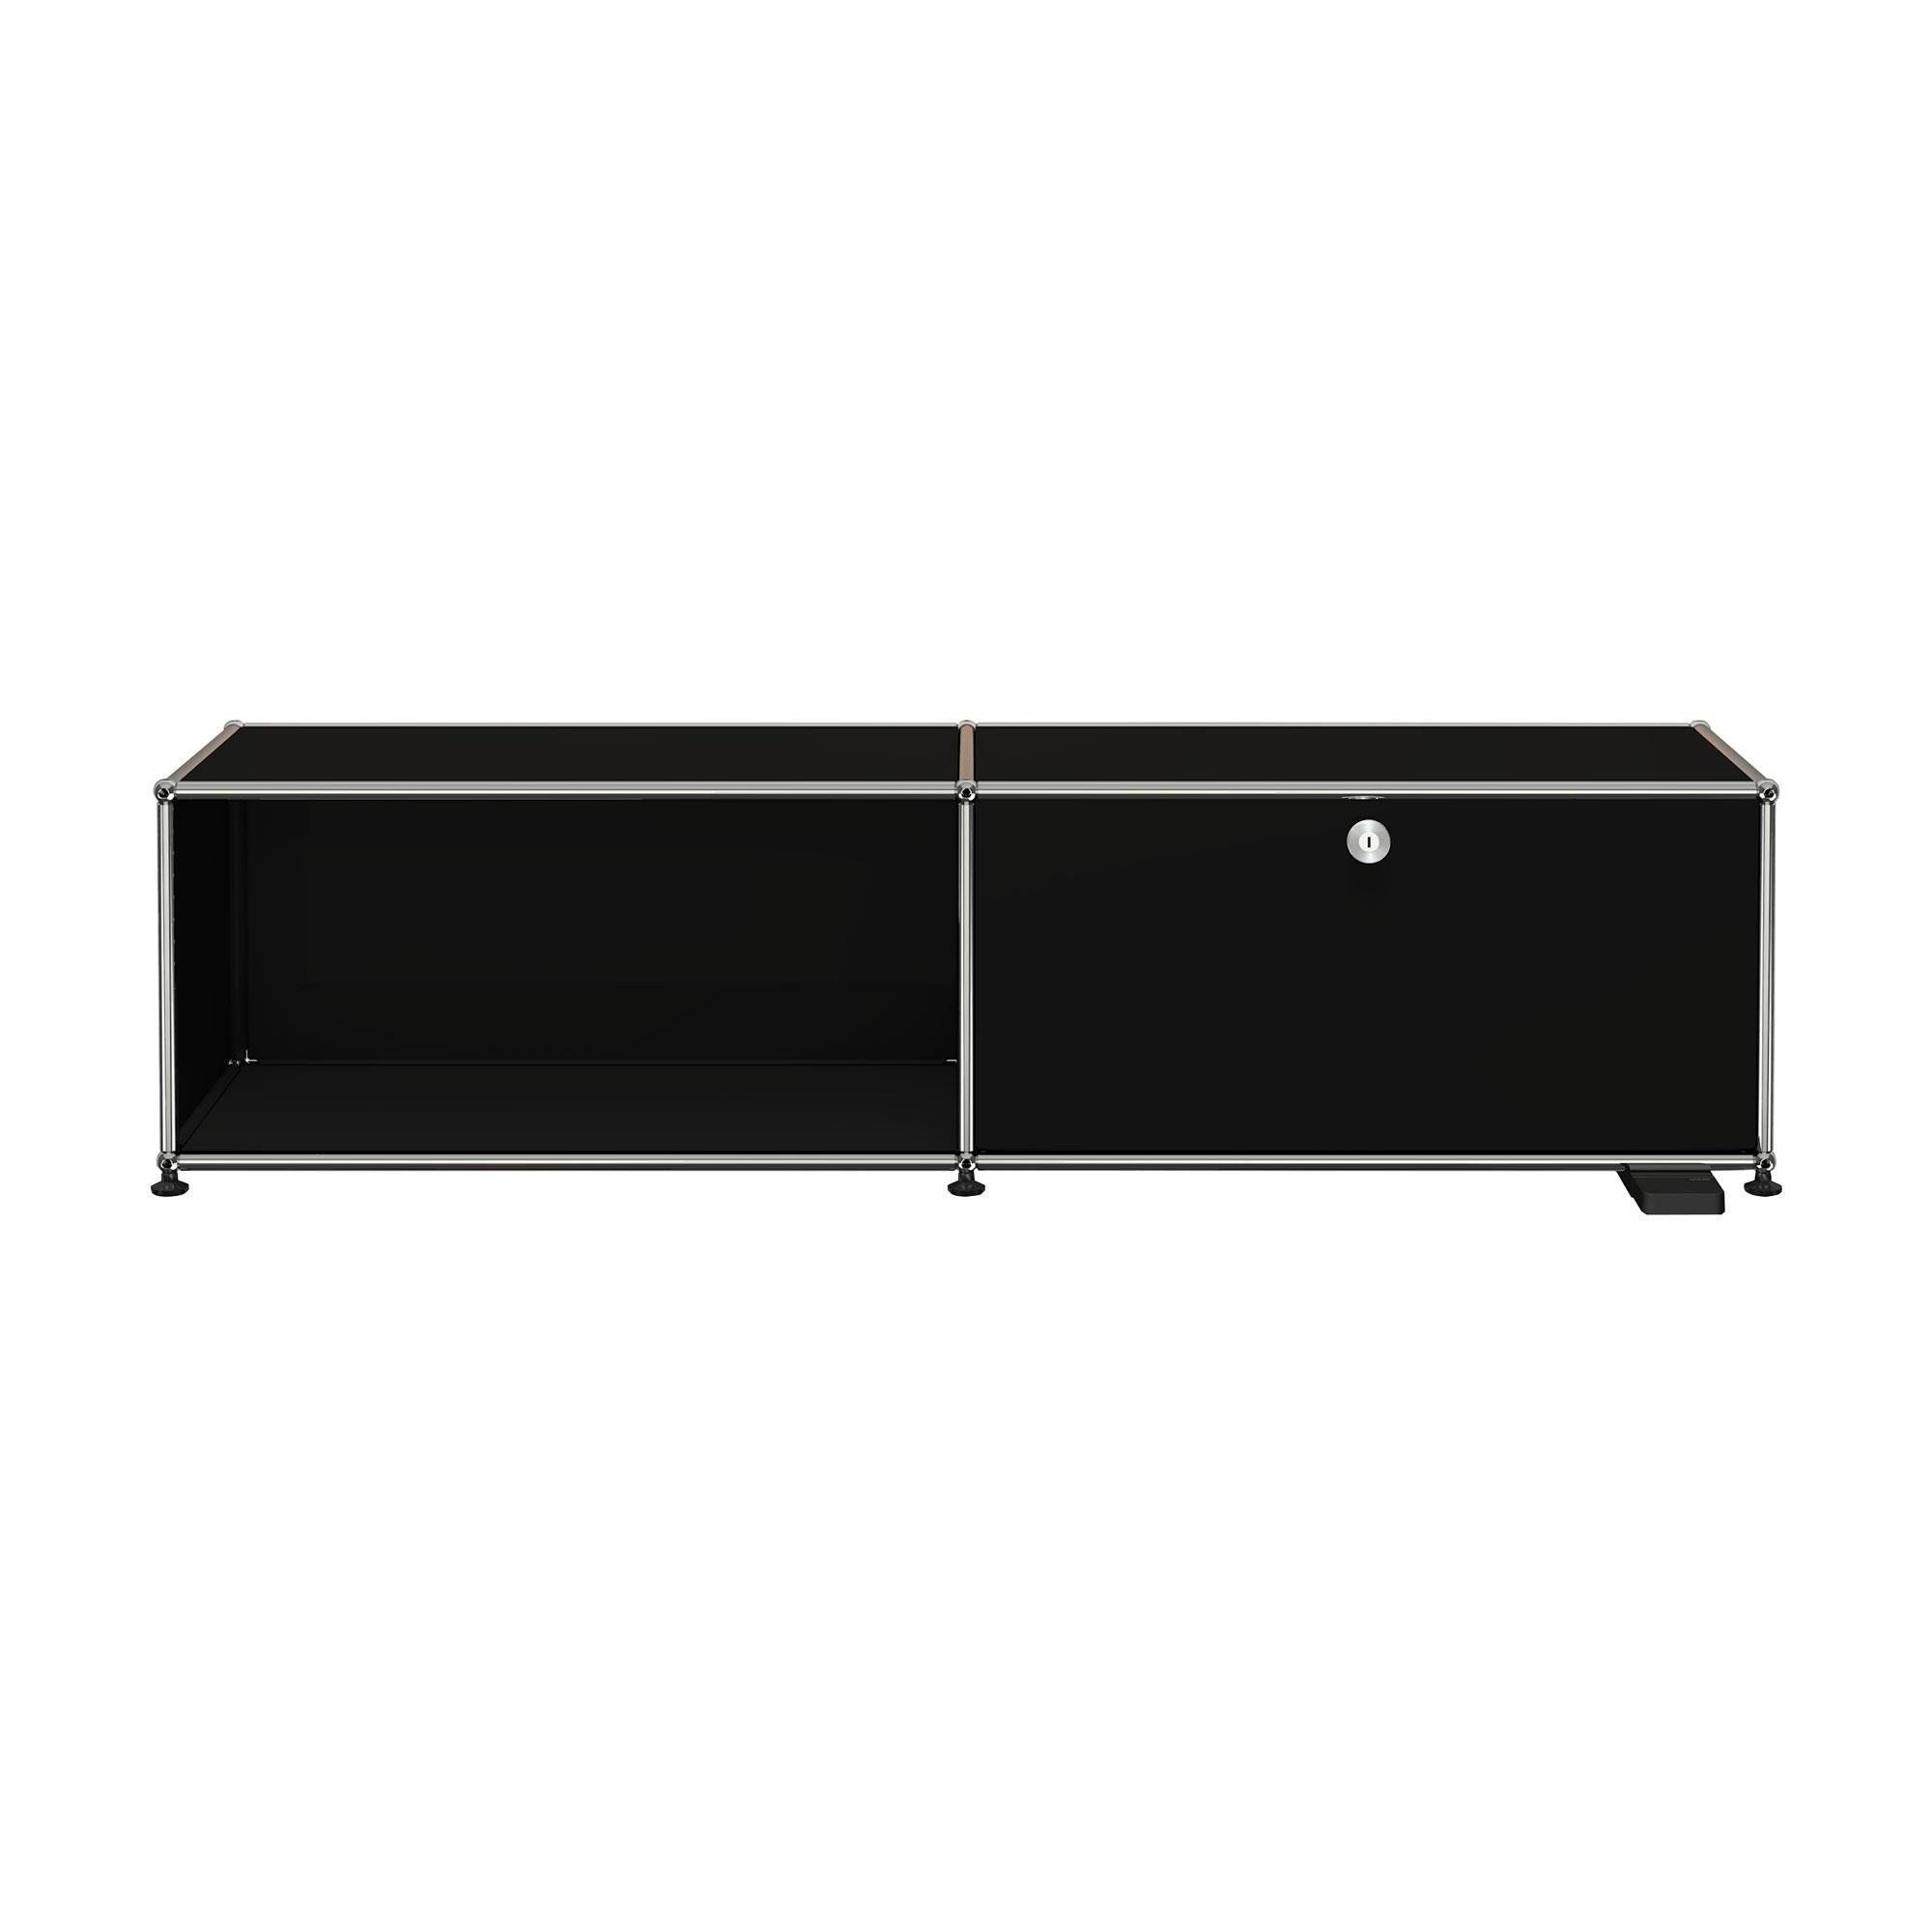 USM Haller   USM Haller E TV/Hi Fi Furniture With Light   Graphite